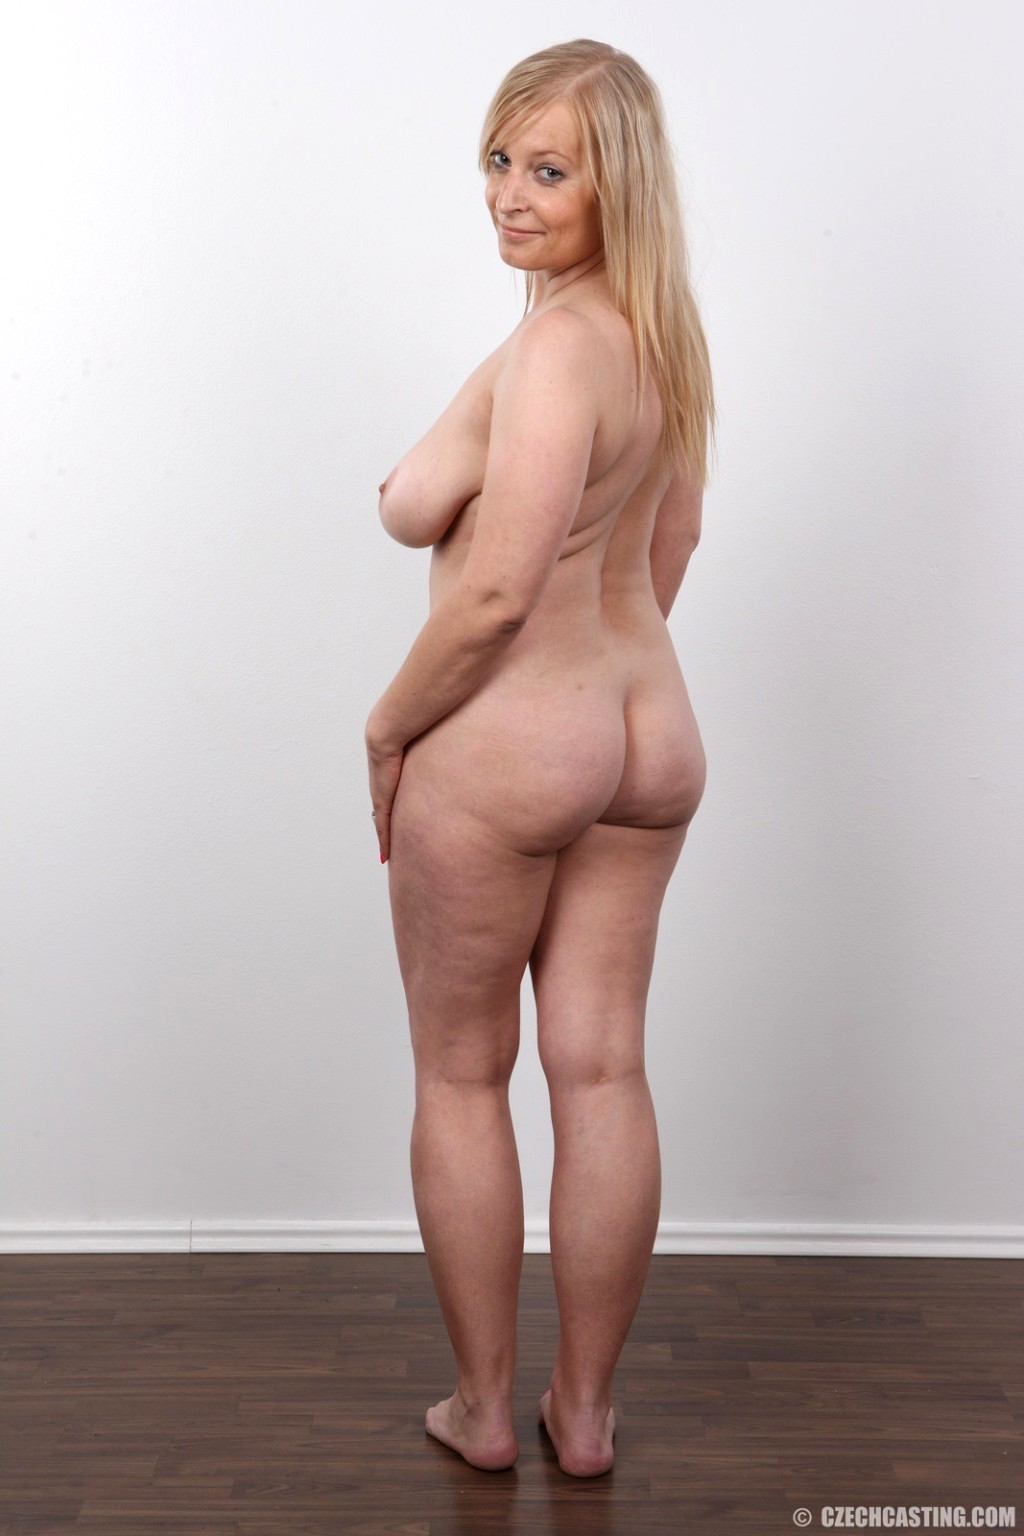 mommy please spank me